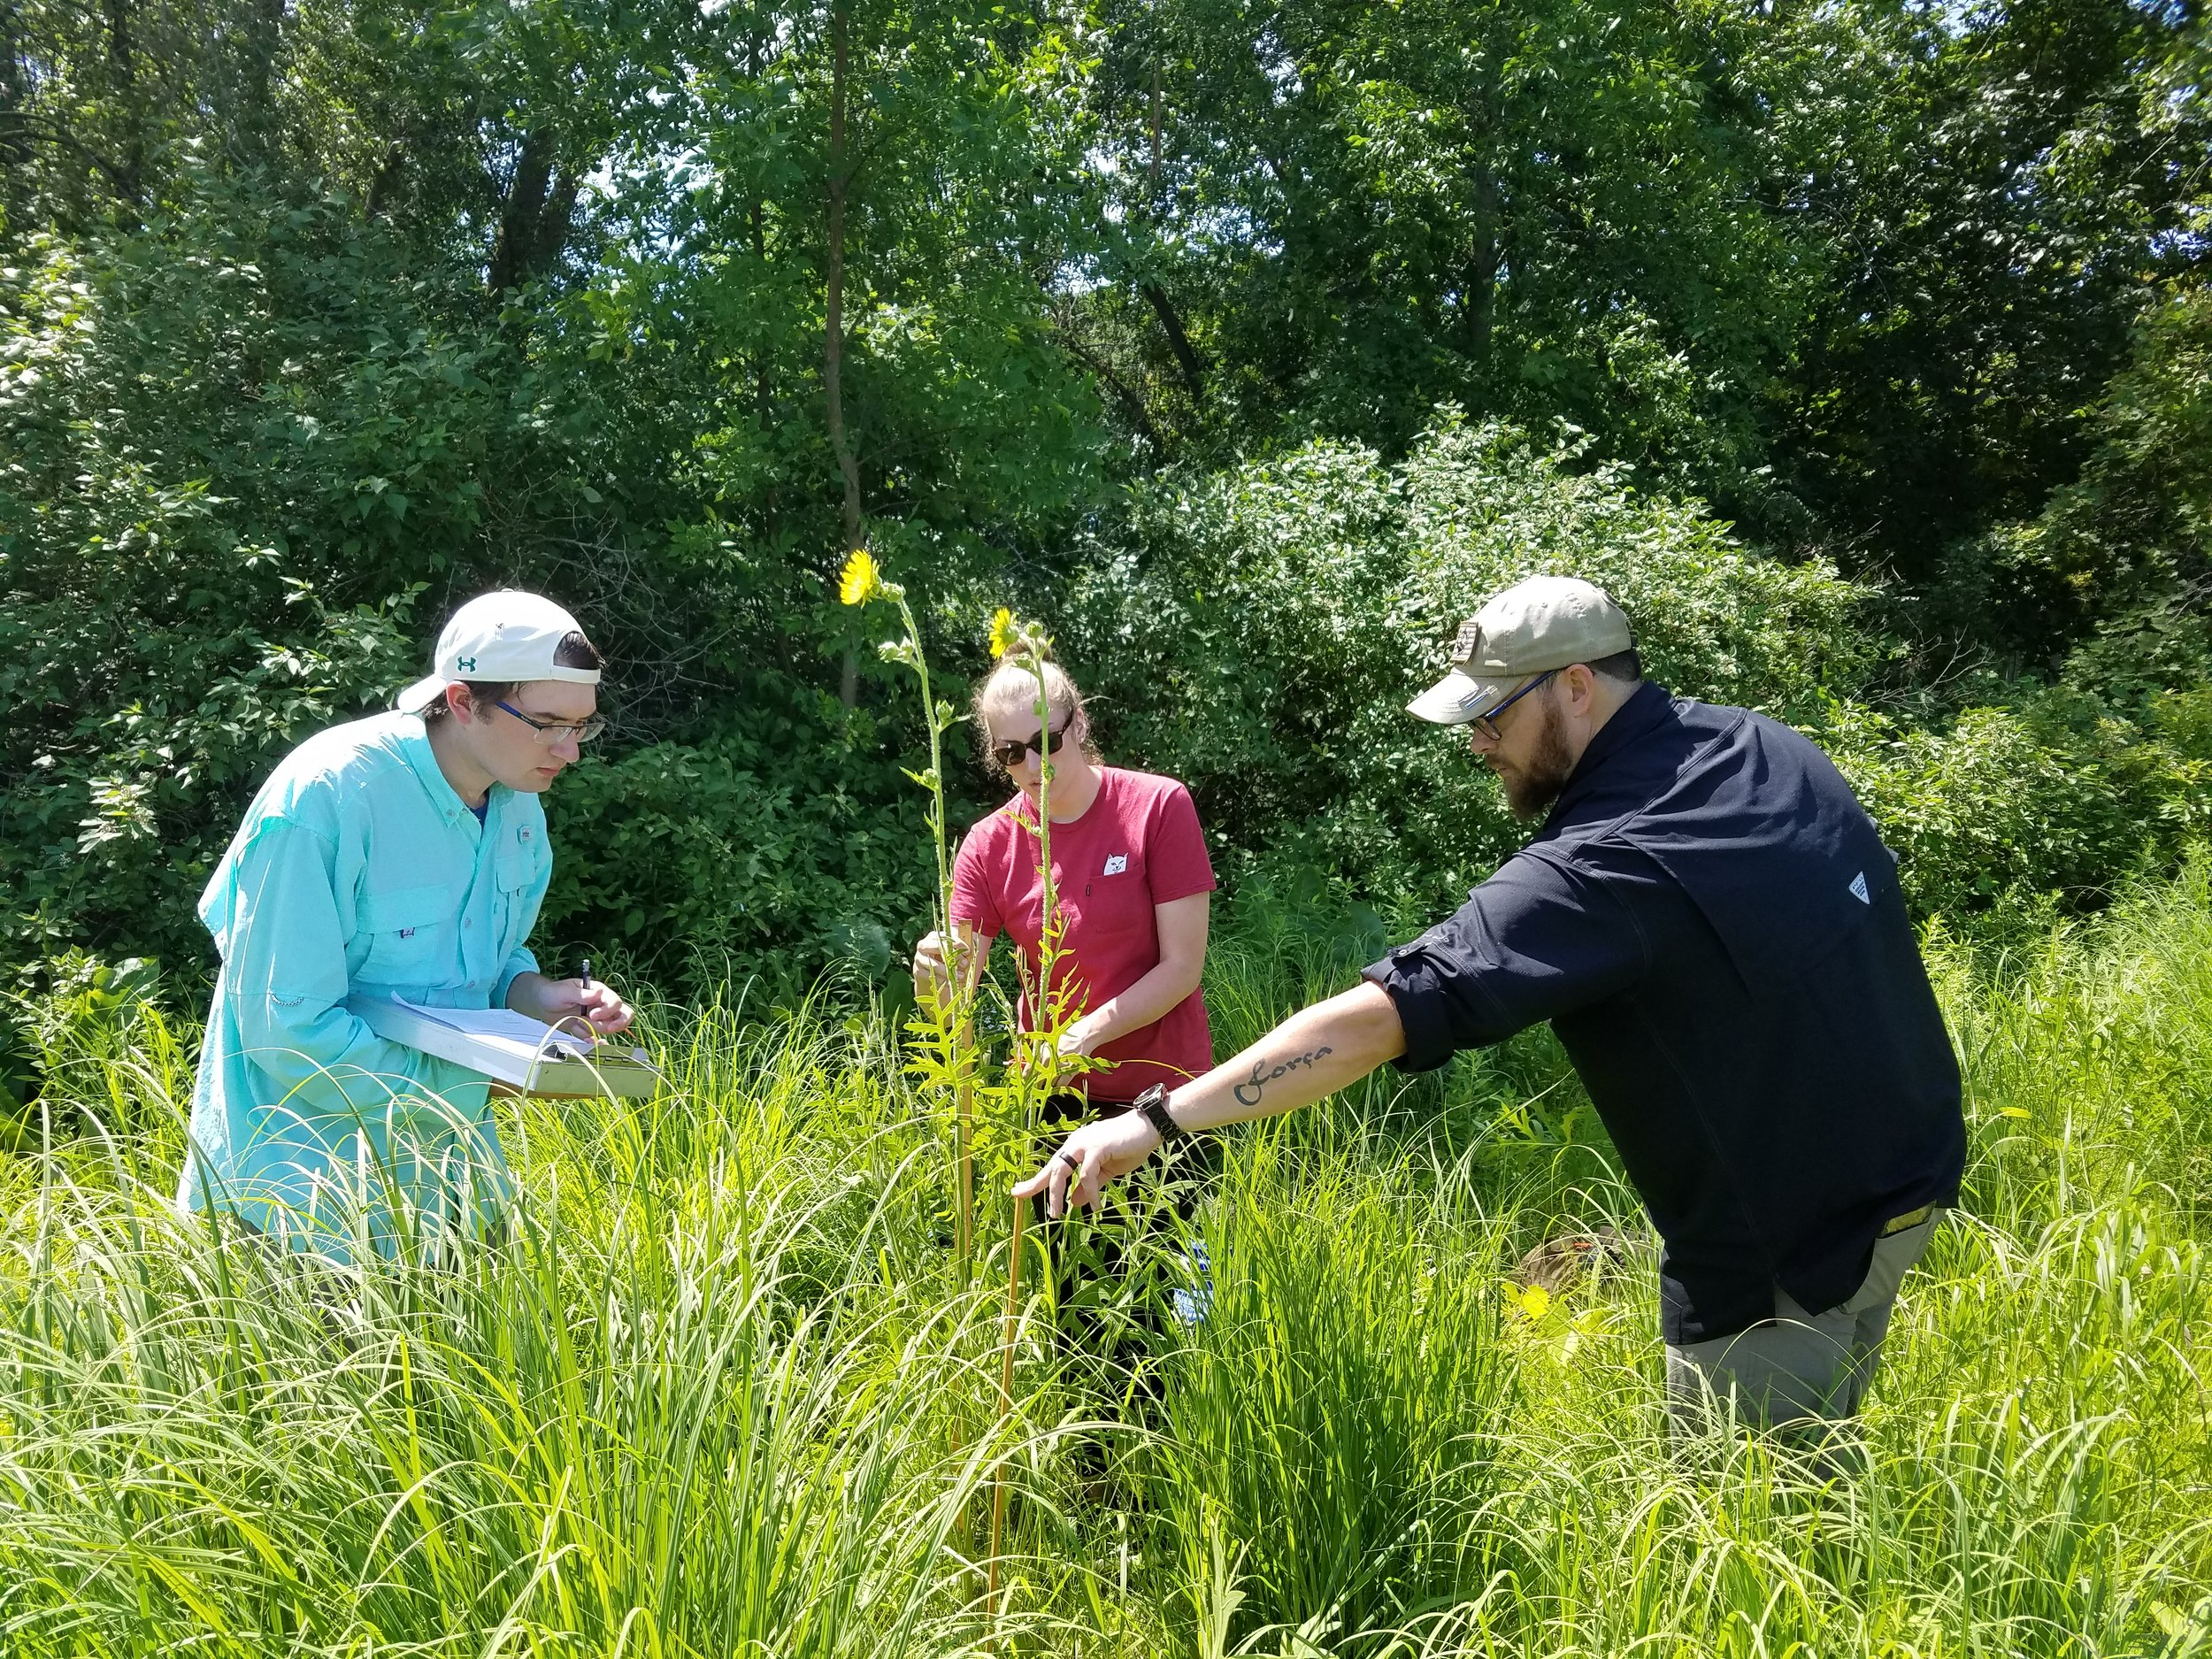 Kyle Hansen, Abby Mader and Eric Mattos (left to right) surveying plants in the oak savanna at the UWGB Cofrin Arboretum (July 2019)